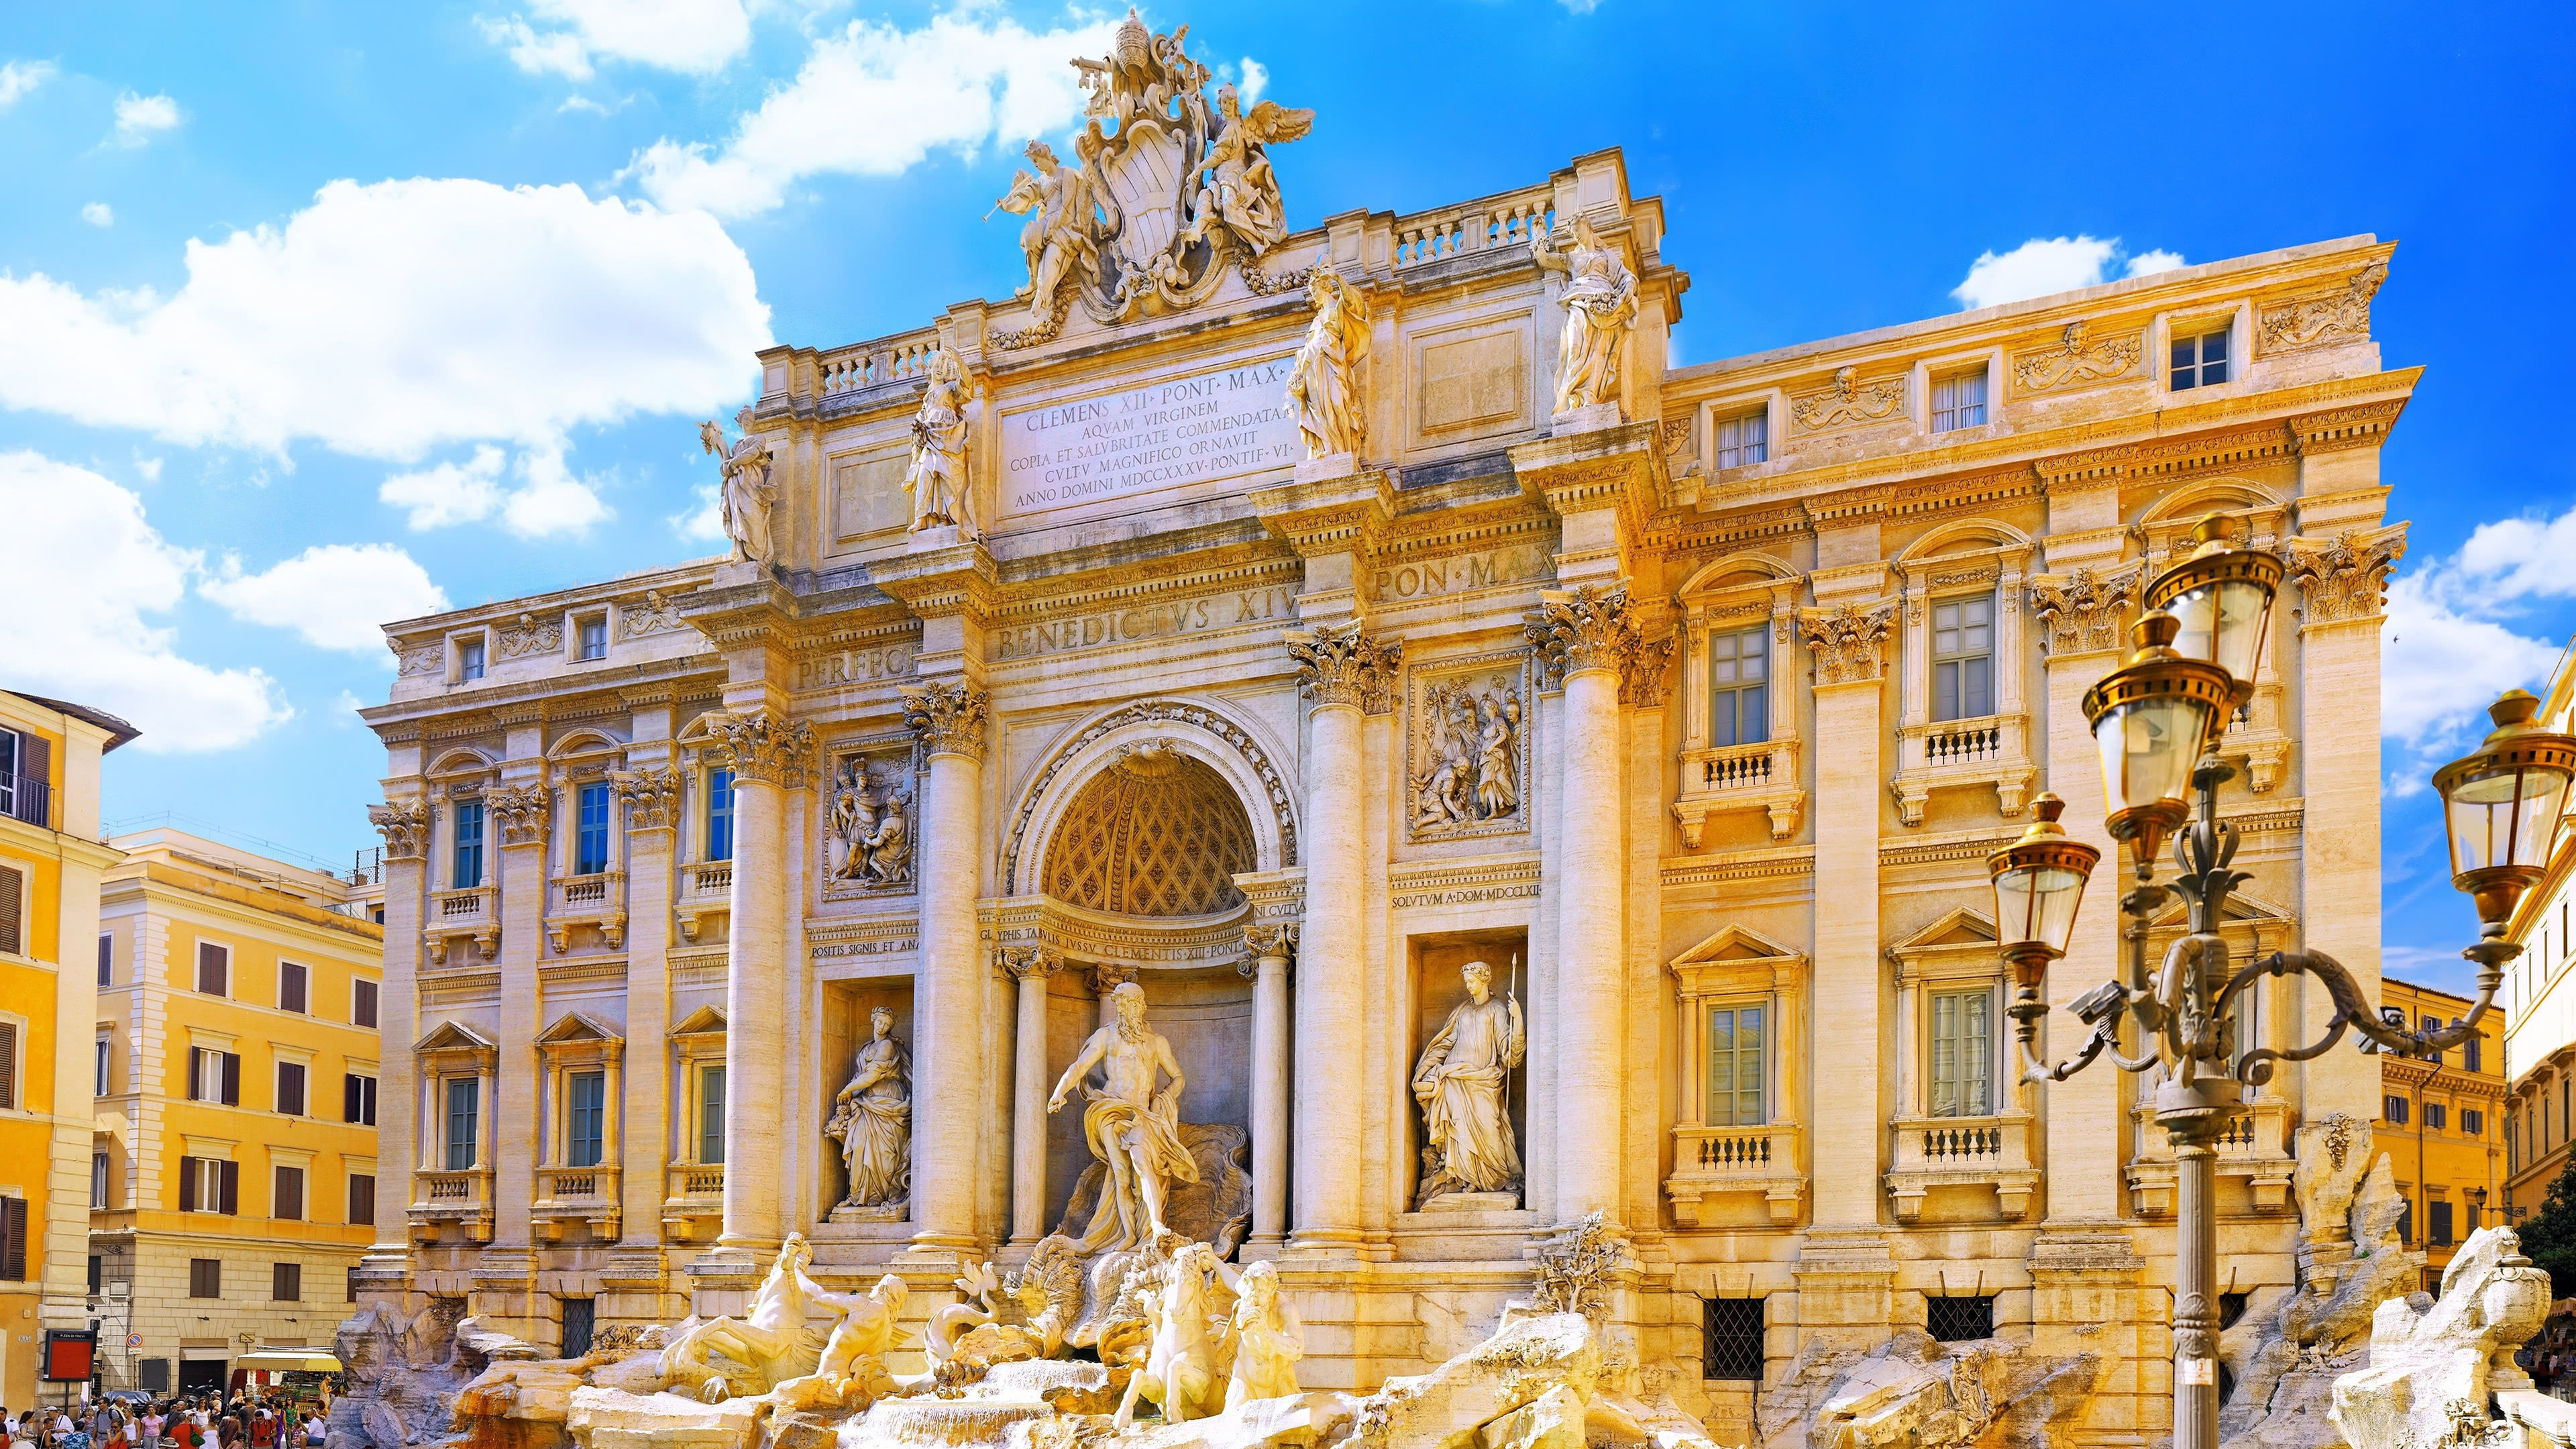 trevi fountain rome italy uhd 4k wallpaper